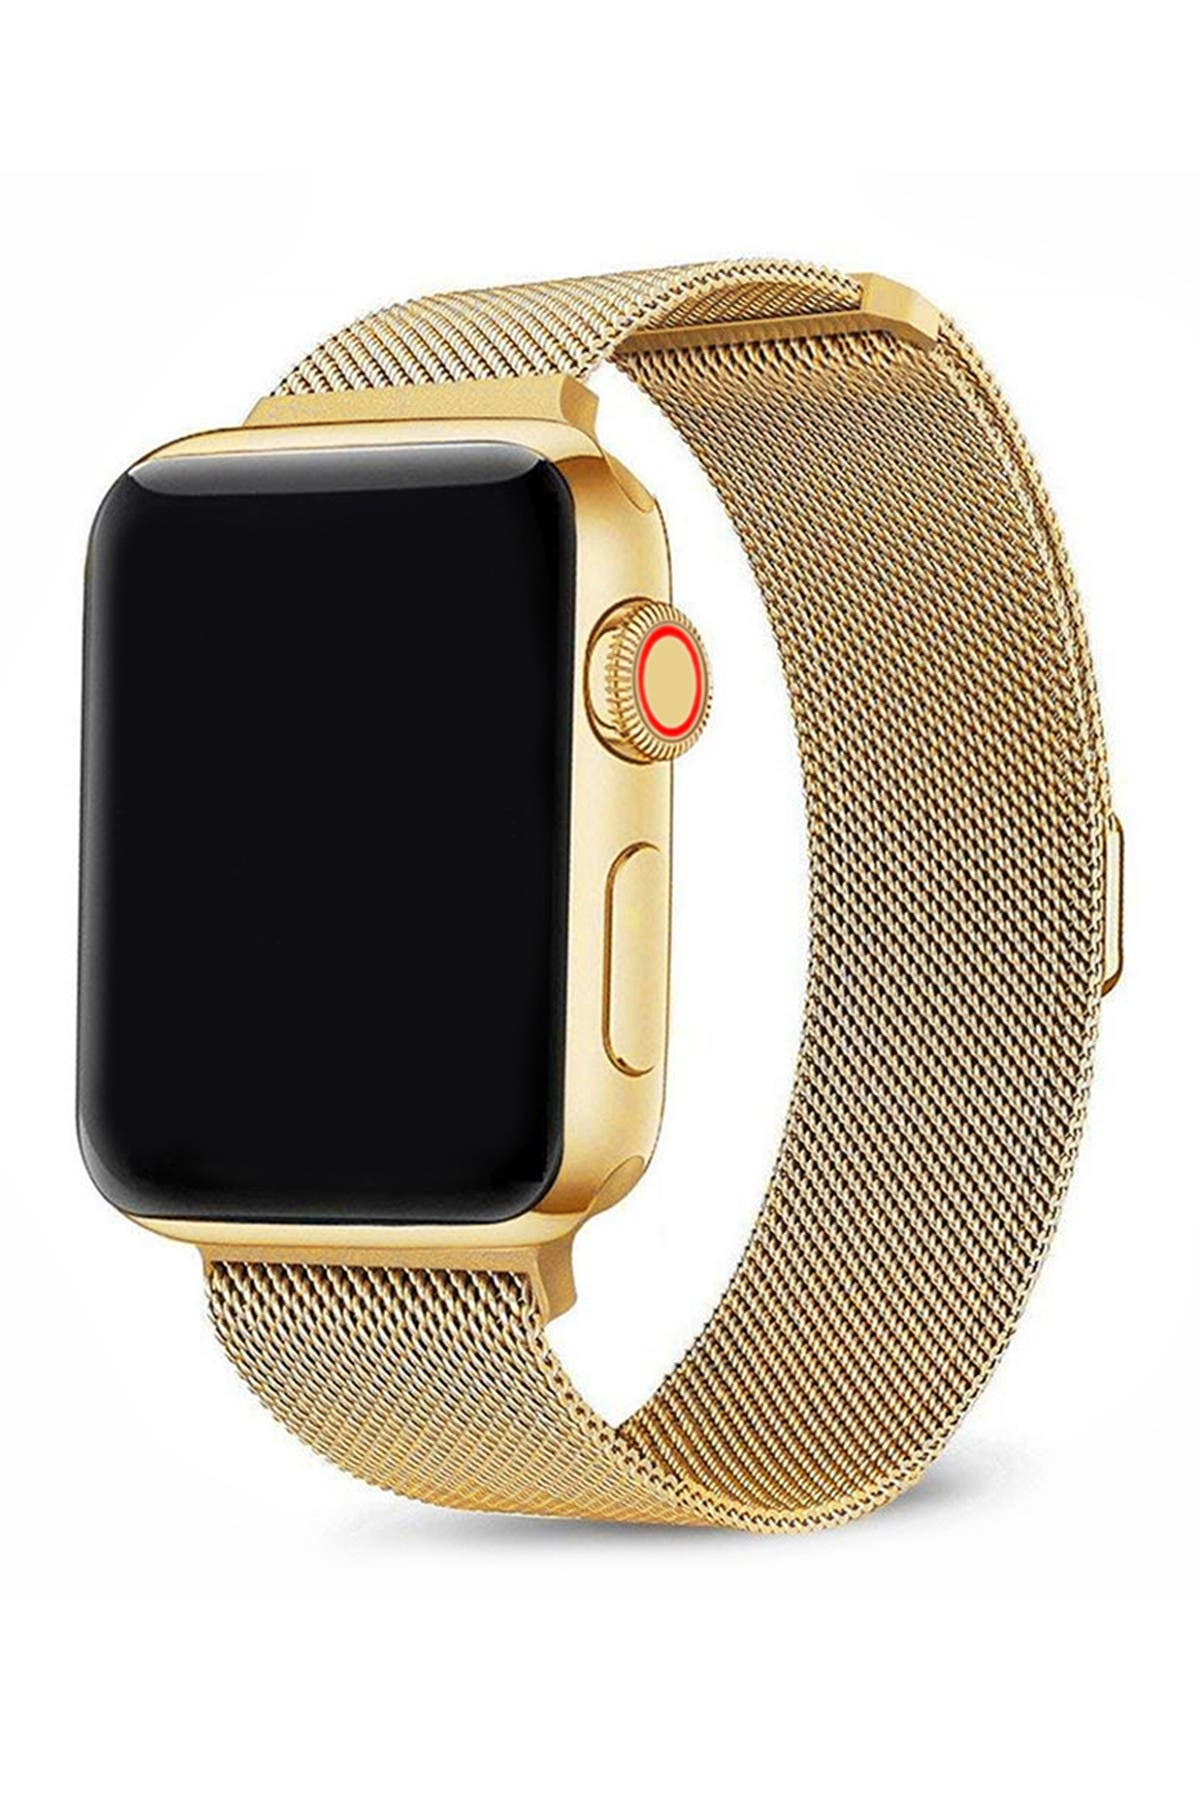 Image of POSH TECH Stainless Steel Band for Apple Watch Series 1, 2, 3, 4, 5 - 42mm/44mm